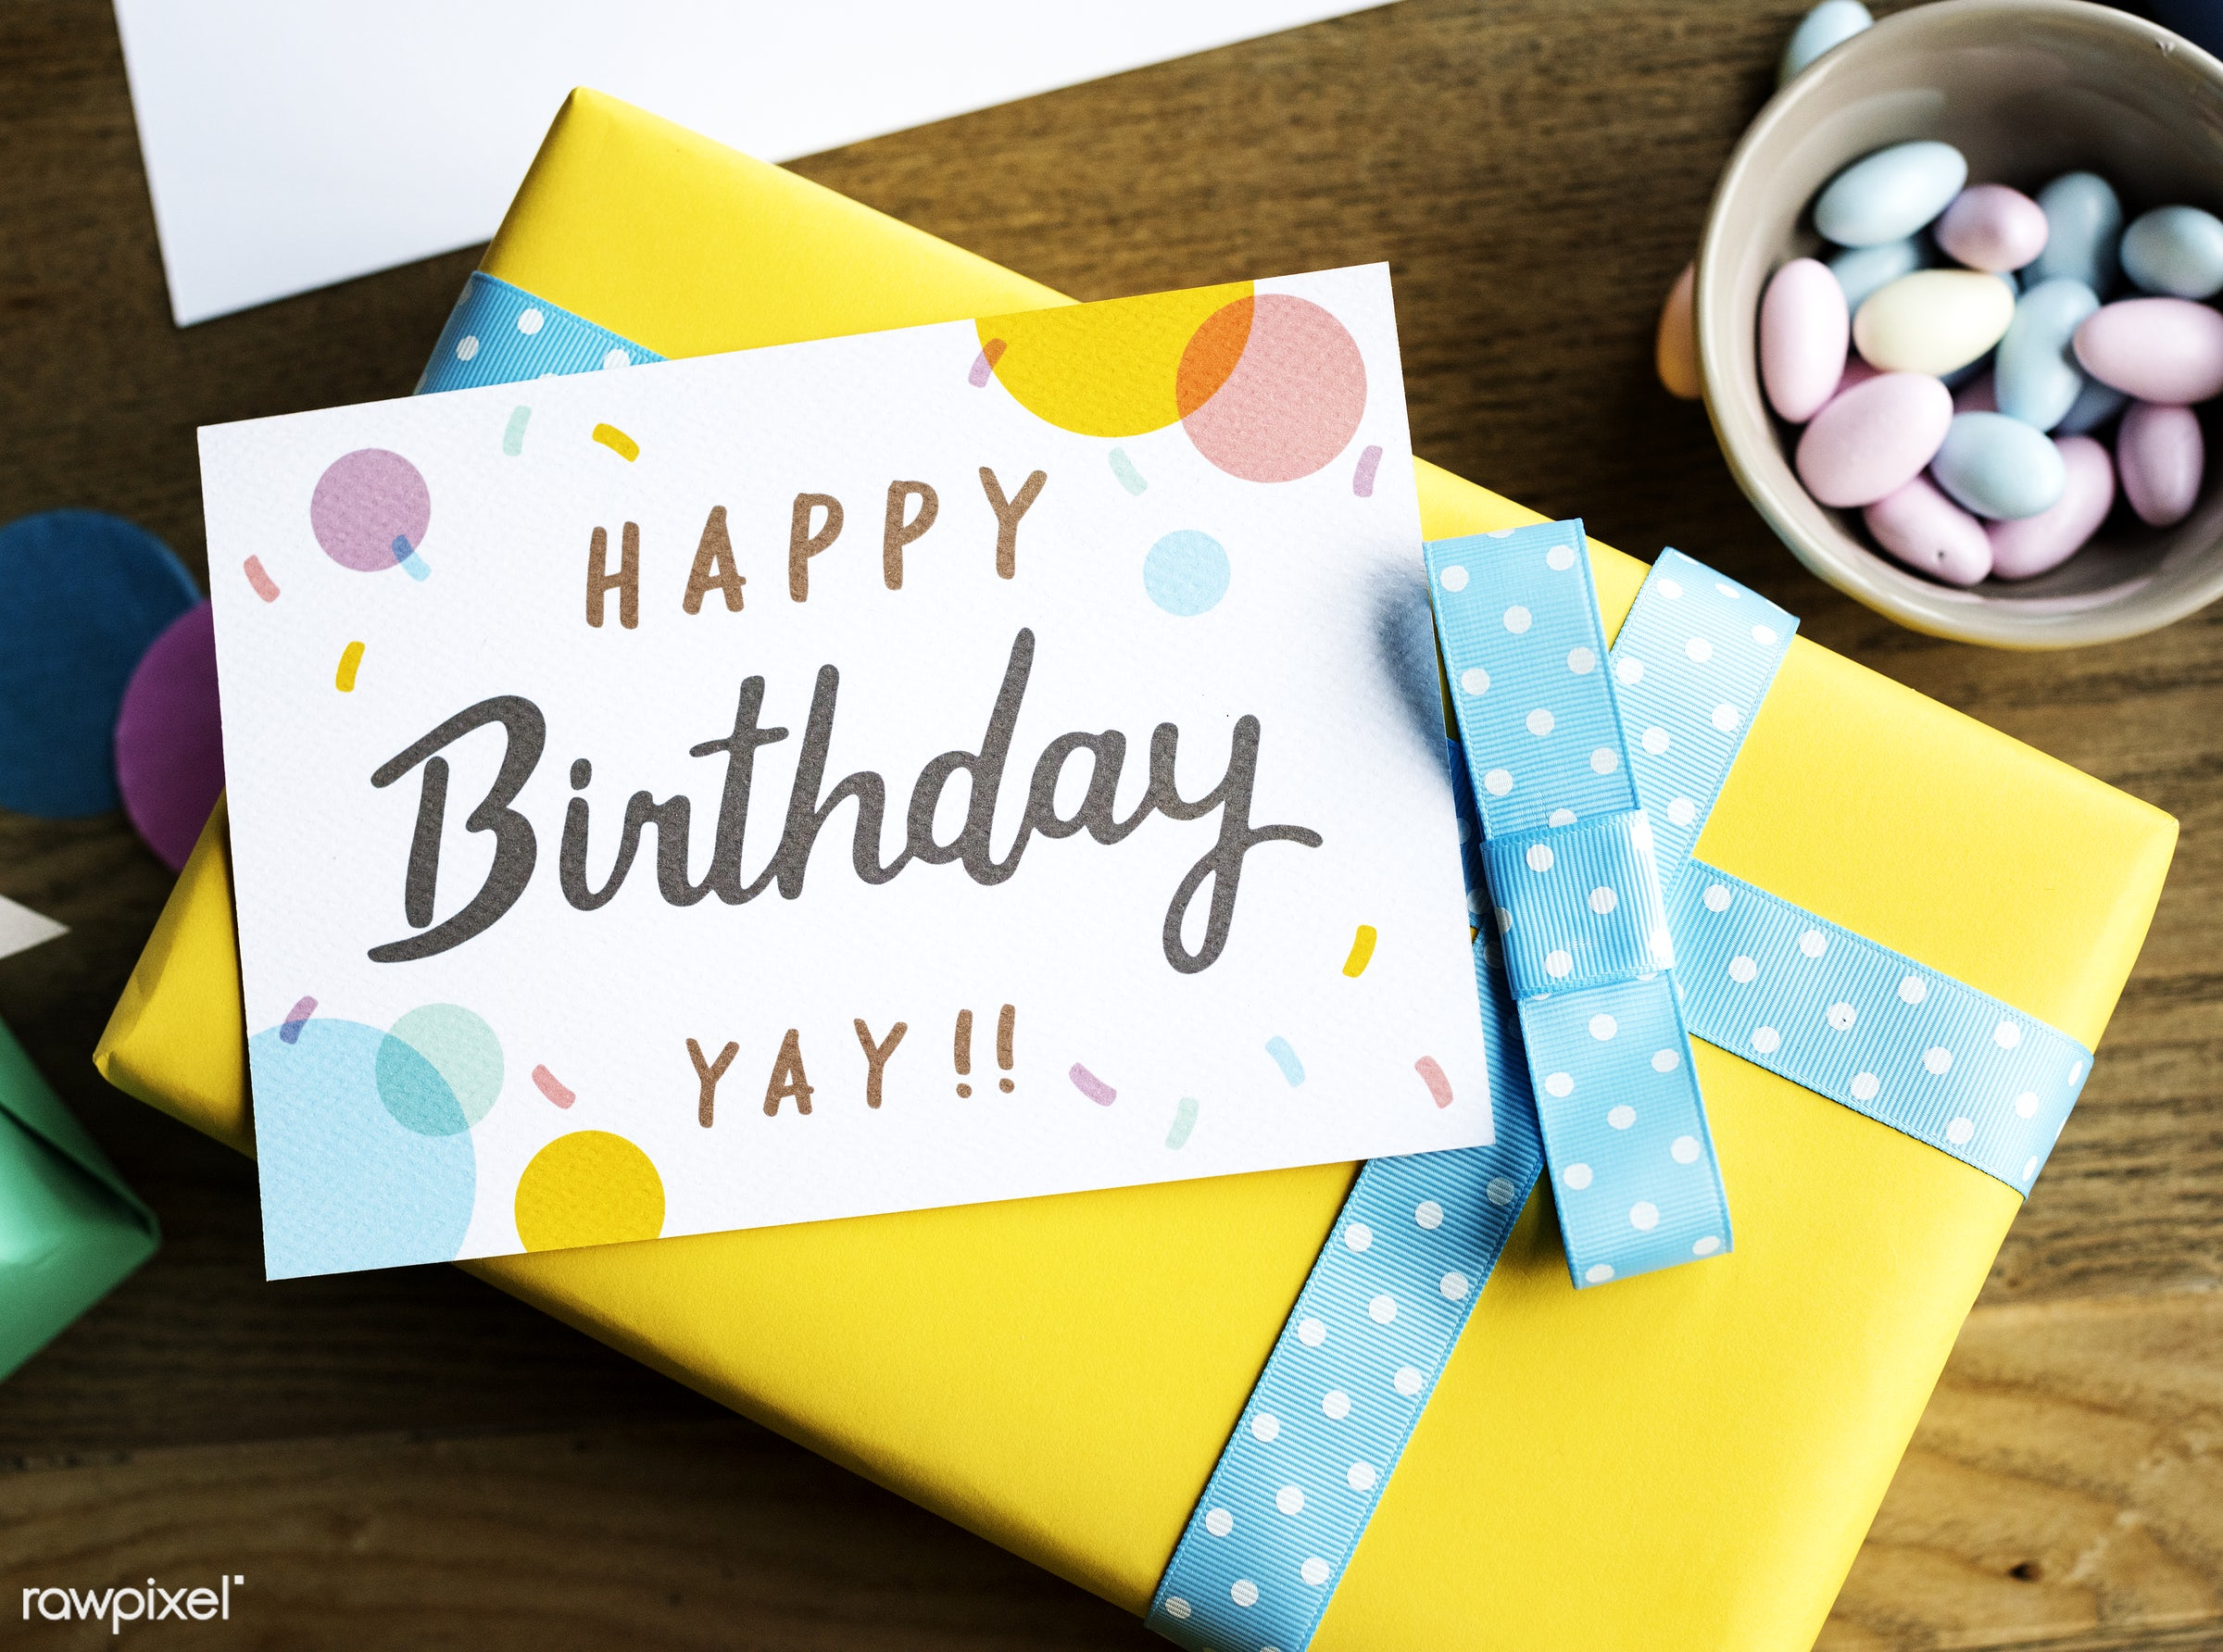 Birthday Present Gift  with Wishing Card Celebration Party - nobody, birthday, gift, give, relax, wish, paper, occasion,...